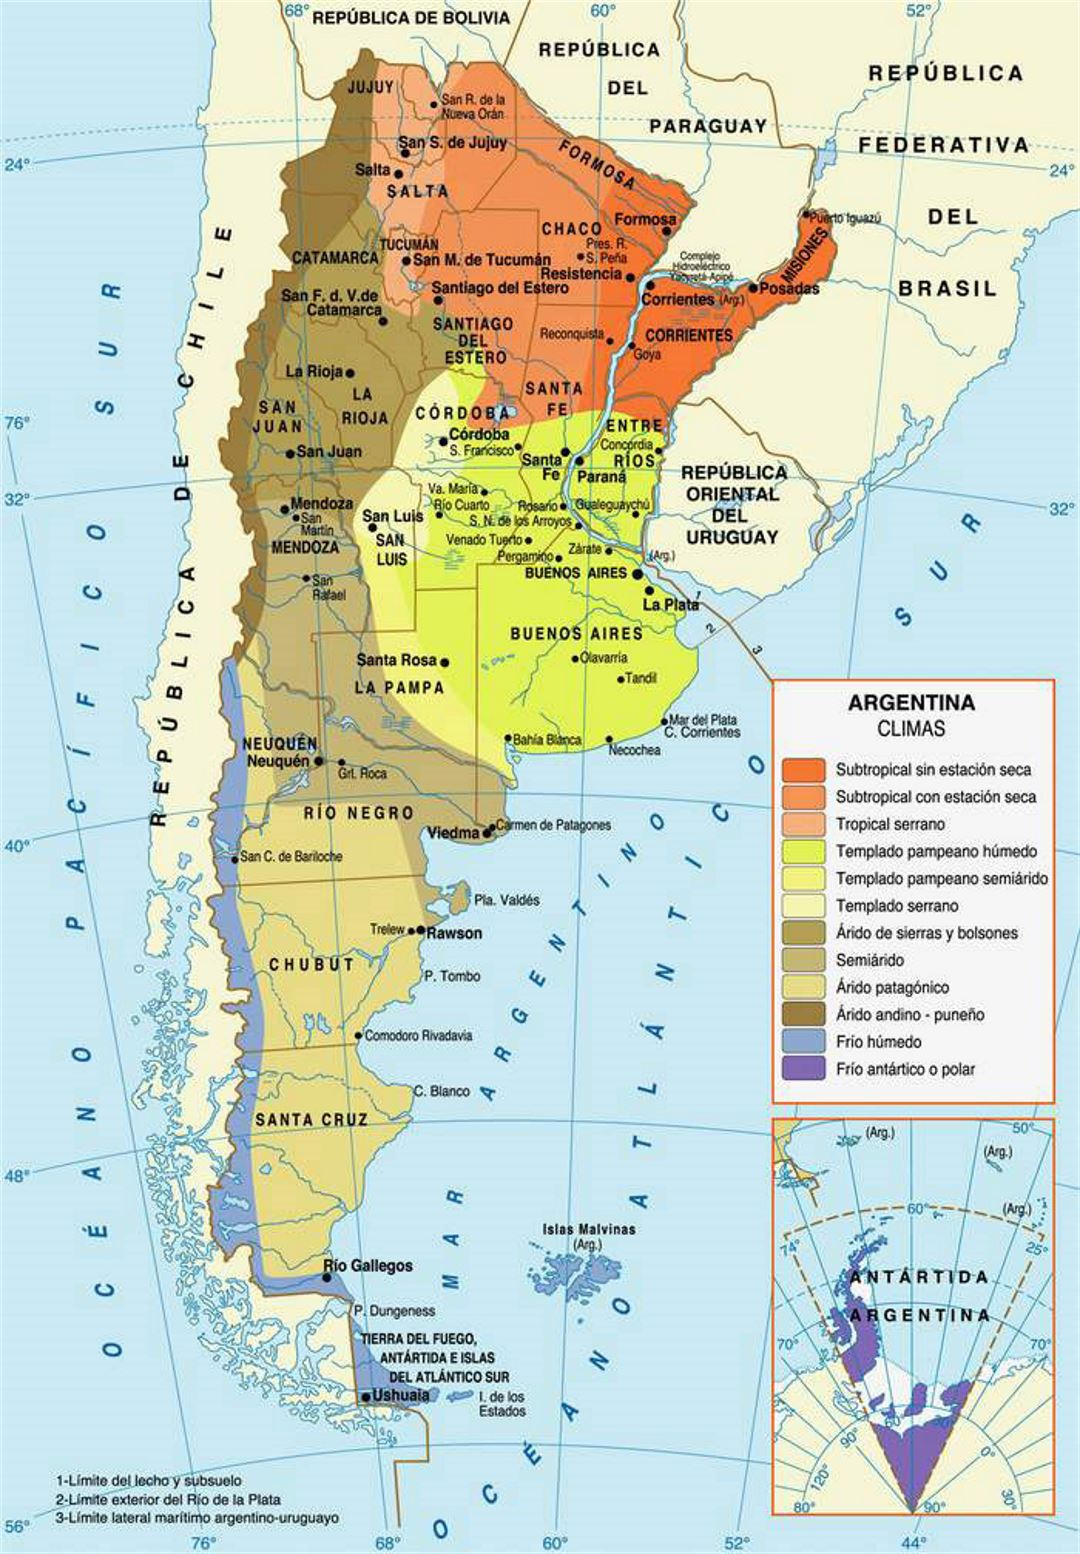 south america map with countries with Climate Map Of Argentina on Large Detailed Africa Mountains Map further Novi Sad moreover What Is Cartography together with Andorra Seven Parishes 2006 moreover Large Detailed Administrative Map Of England 1974.